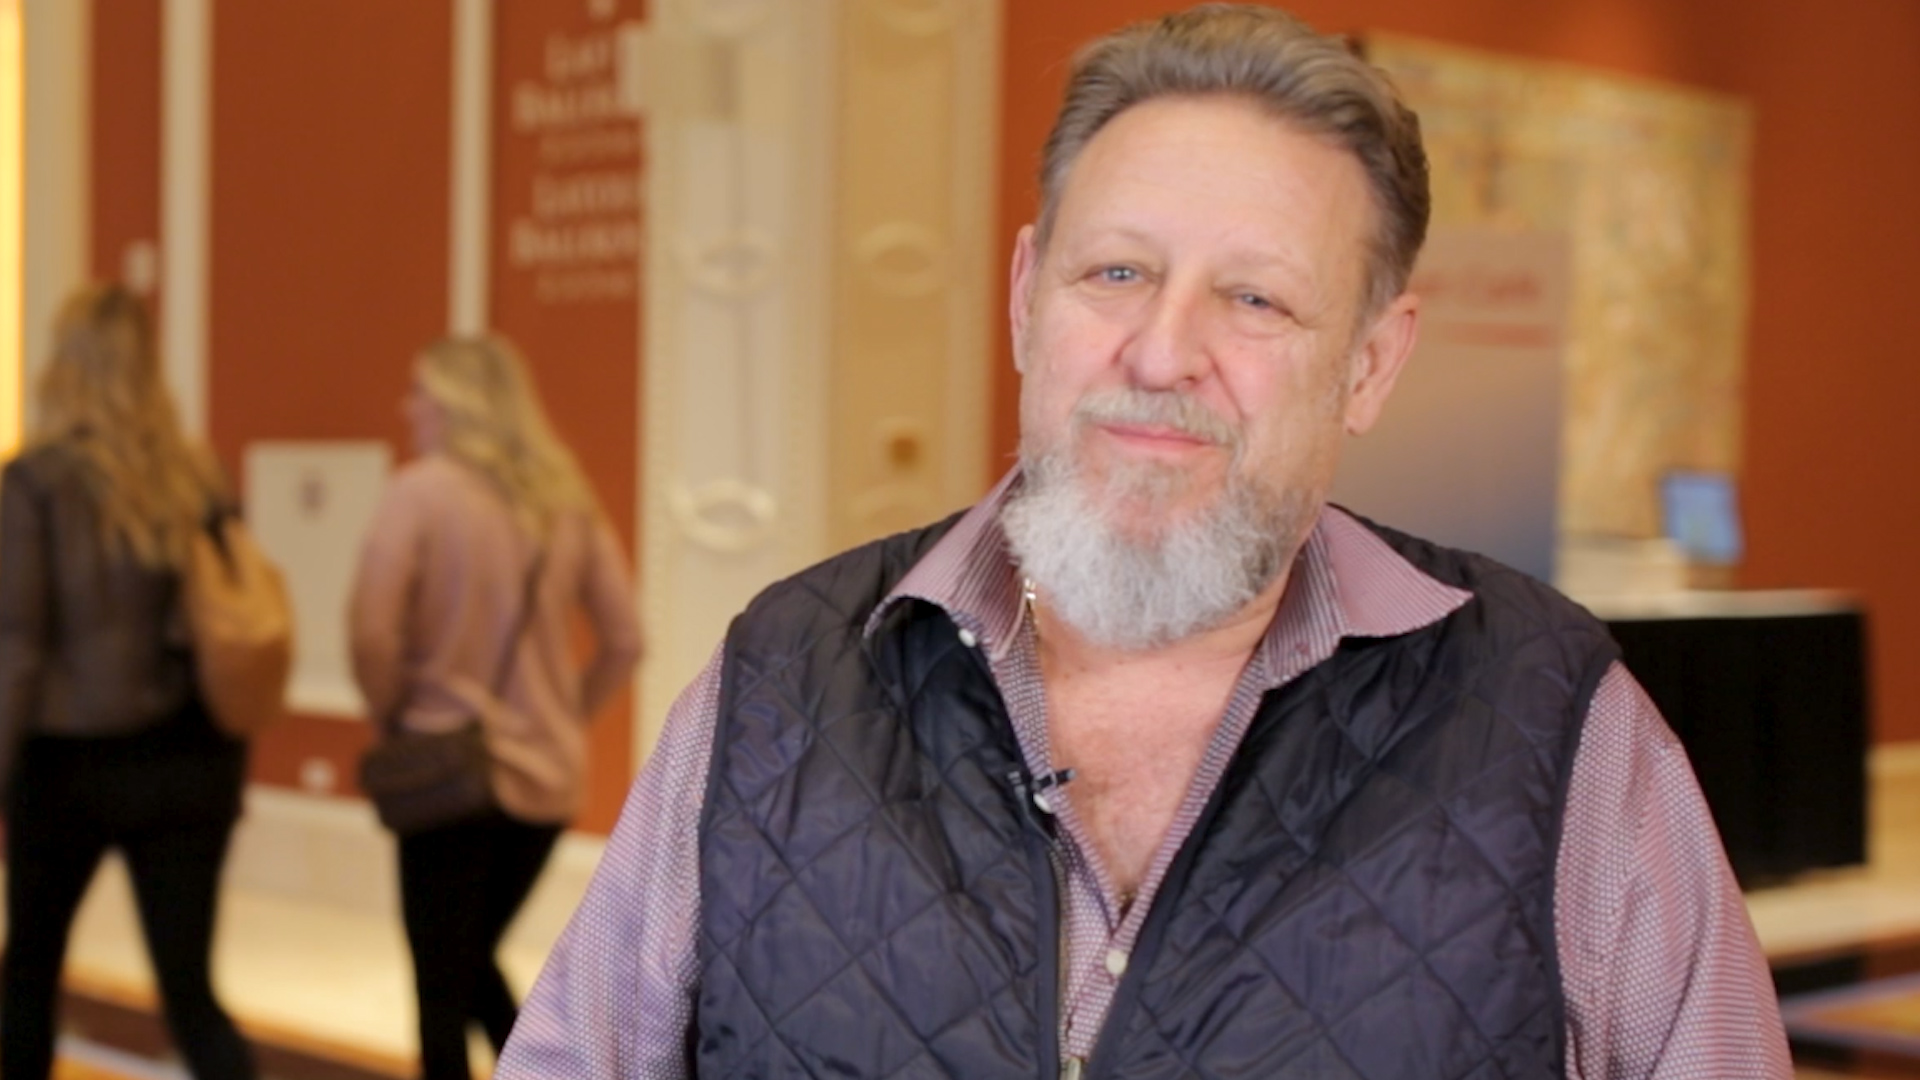 Video preview: Dave Johannes Brings 40+ Years of IT and Mail Experience to Moore DM Group